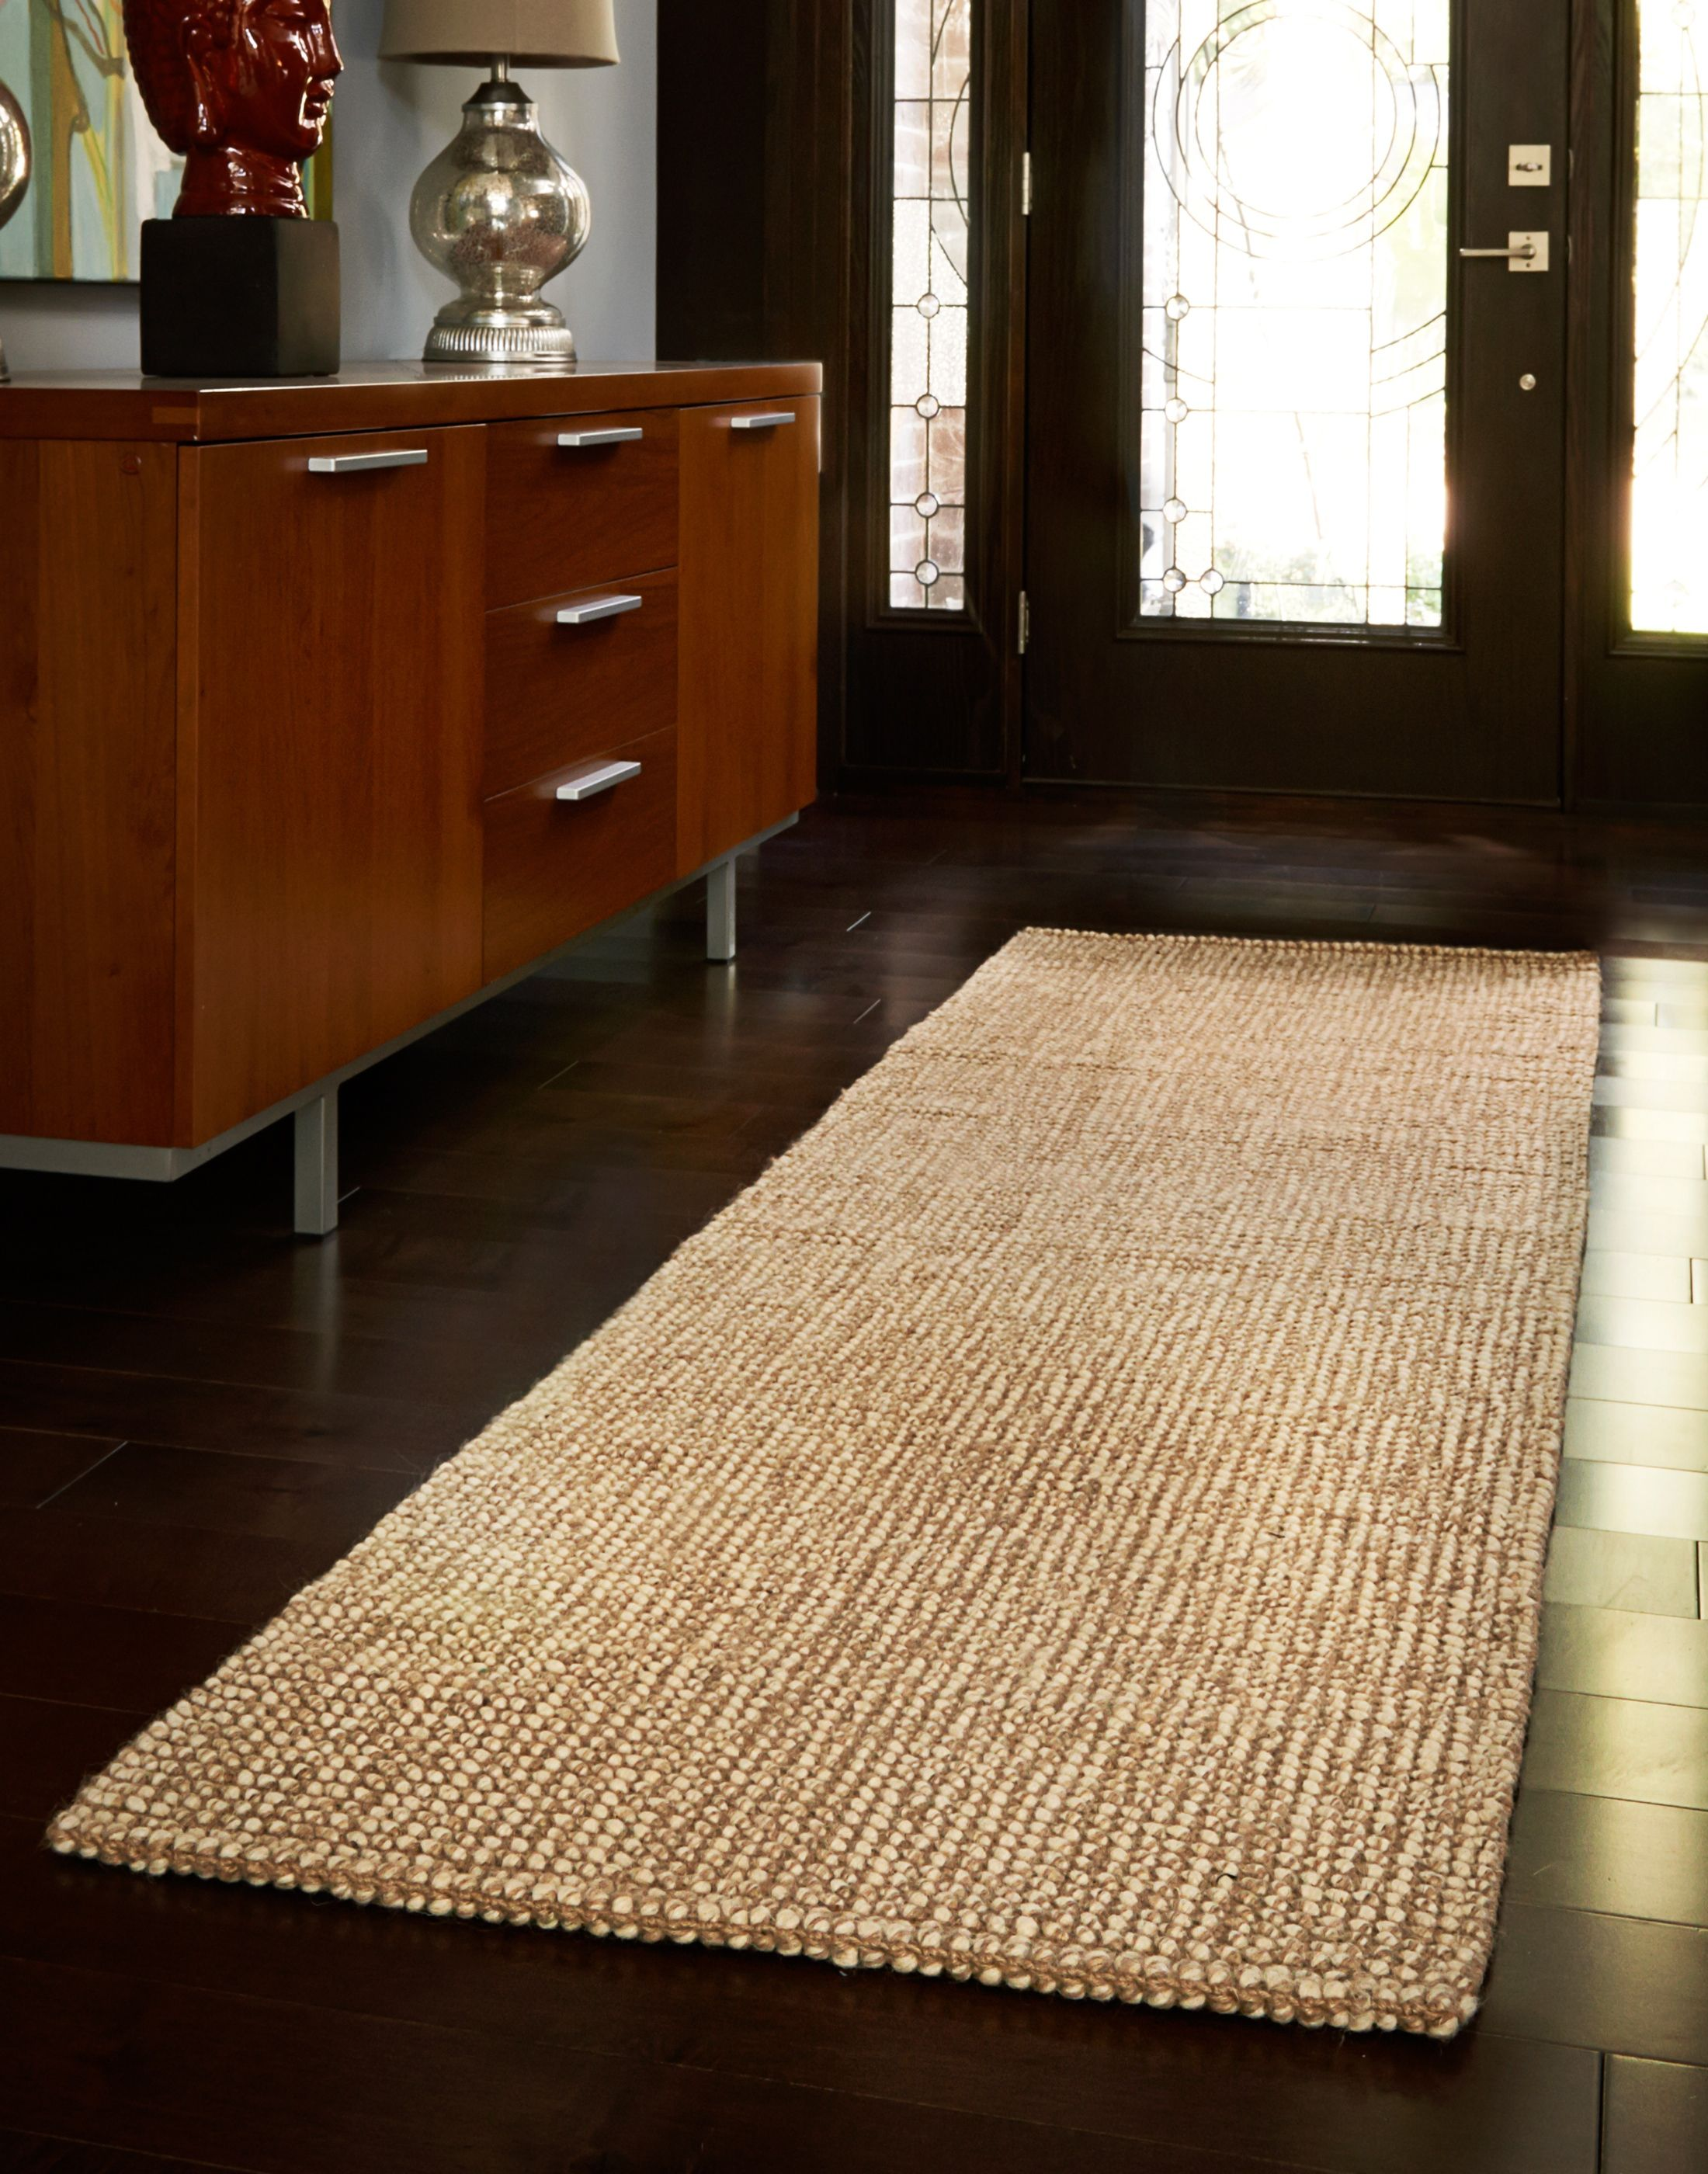 Nice Brown Striped Runner Rug Entryway Hallway Home Decor For Entryway Rugs And Runners Entryway Rug Runner Rug Entryway Rug Runner